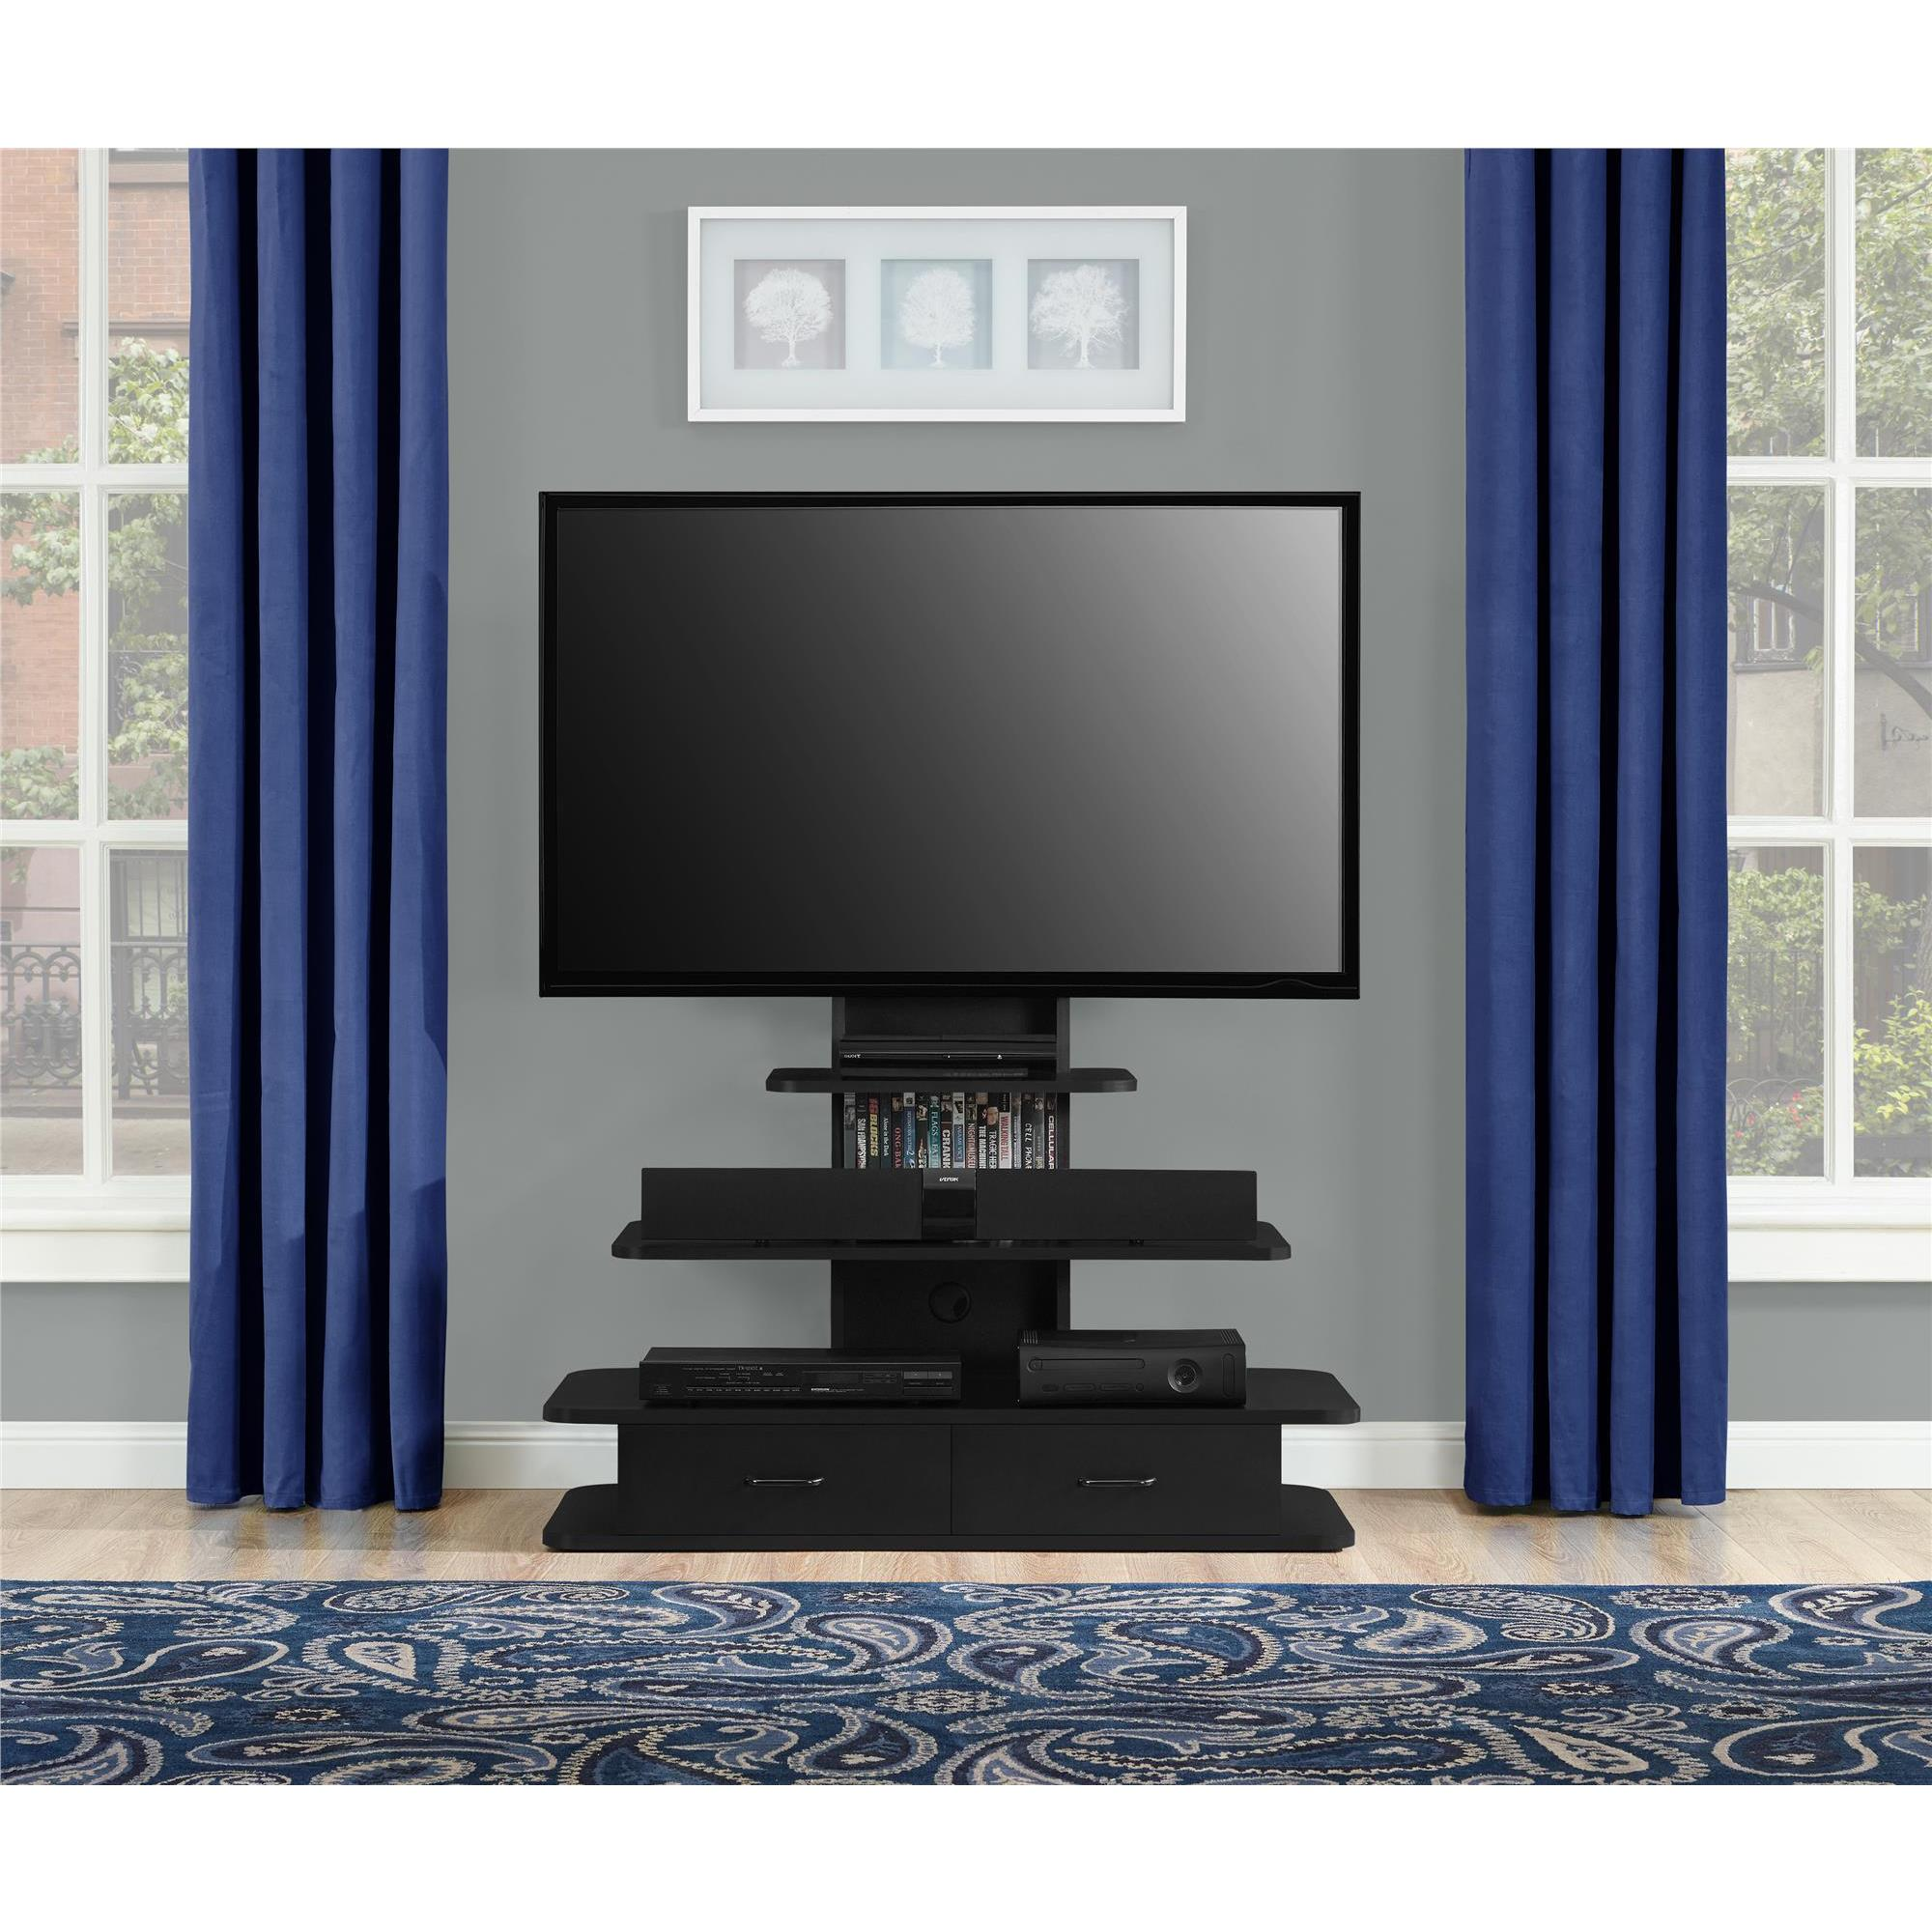 Shop Avenue Greene Crossfield 70 Inch Tv Stand With Mount And